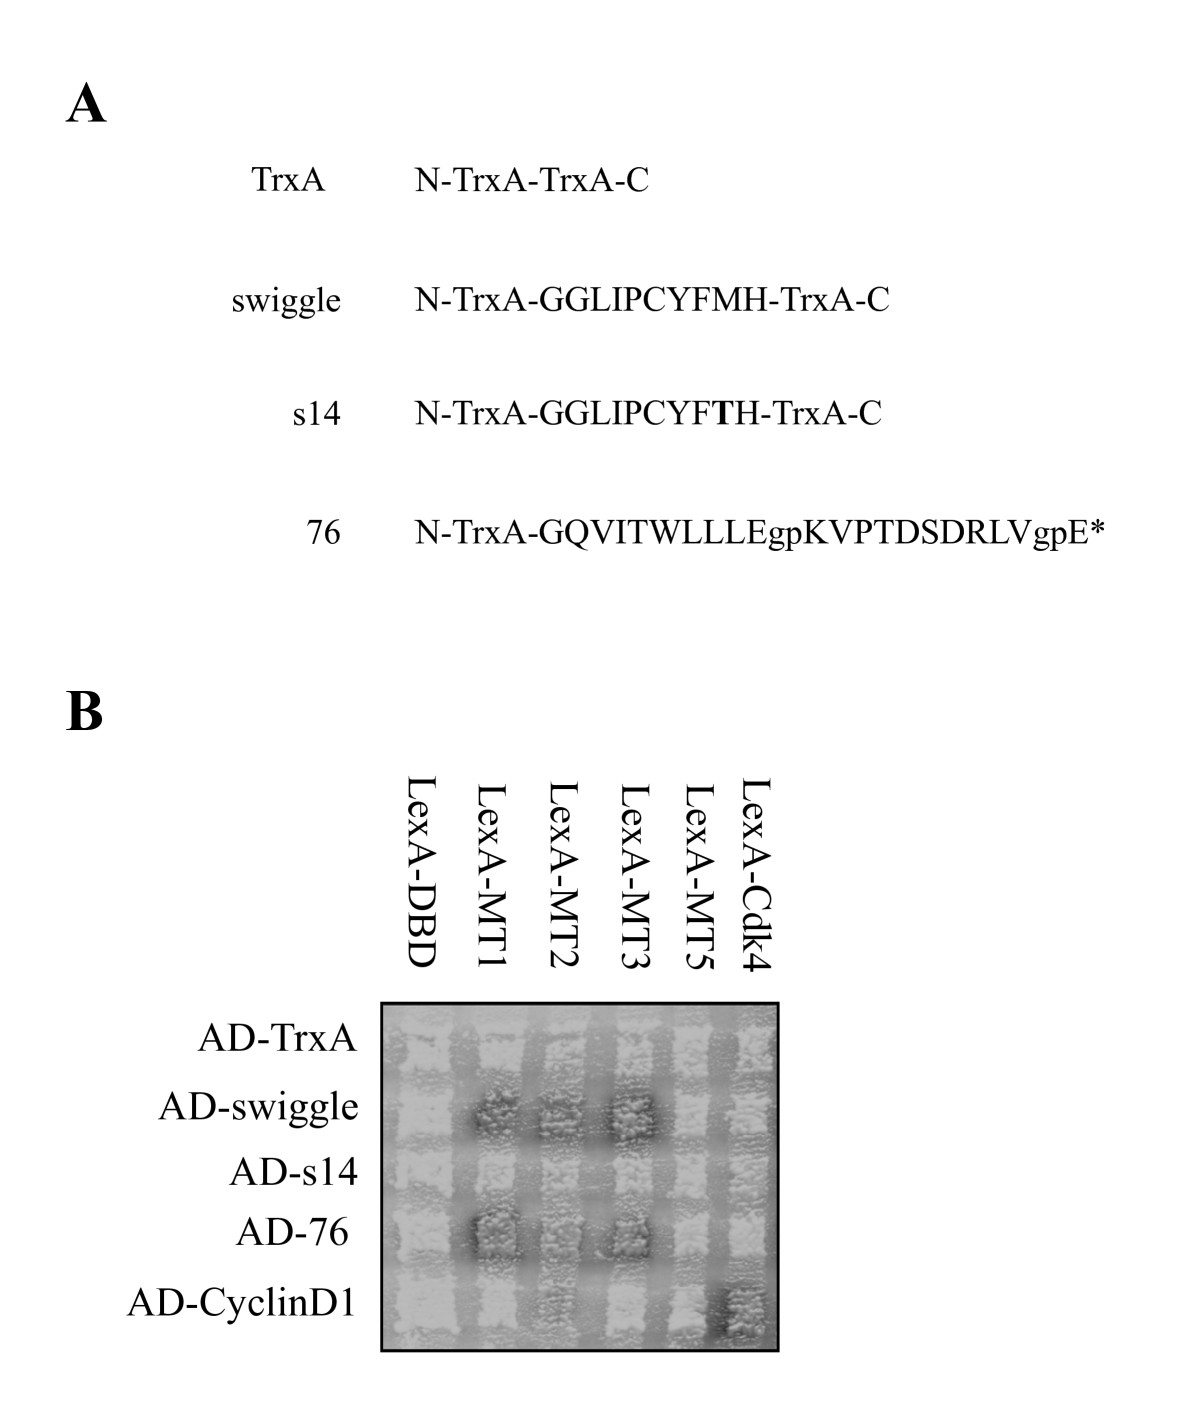 https://static-content.springer.com/image/art%3A10.1186%2F1471-2121-11-58/MediaObjects/12860_2009_Article_503_Fig1_HTML.jpg